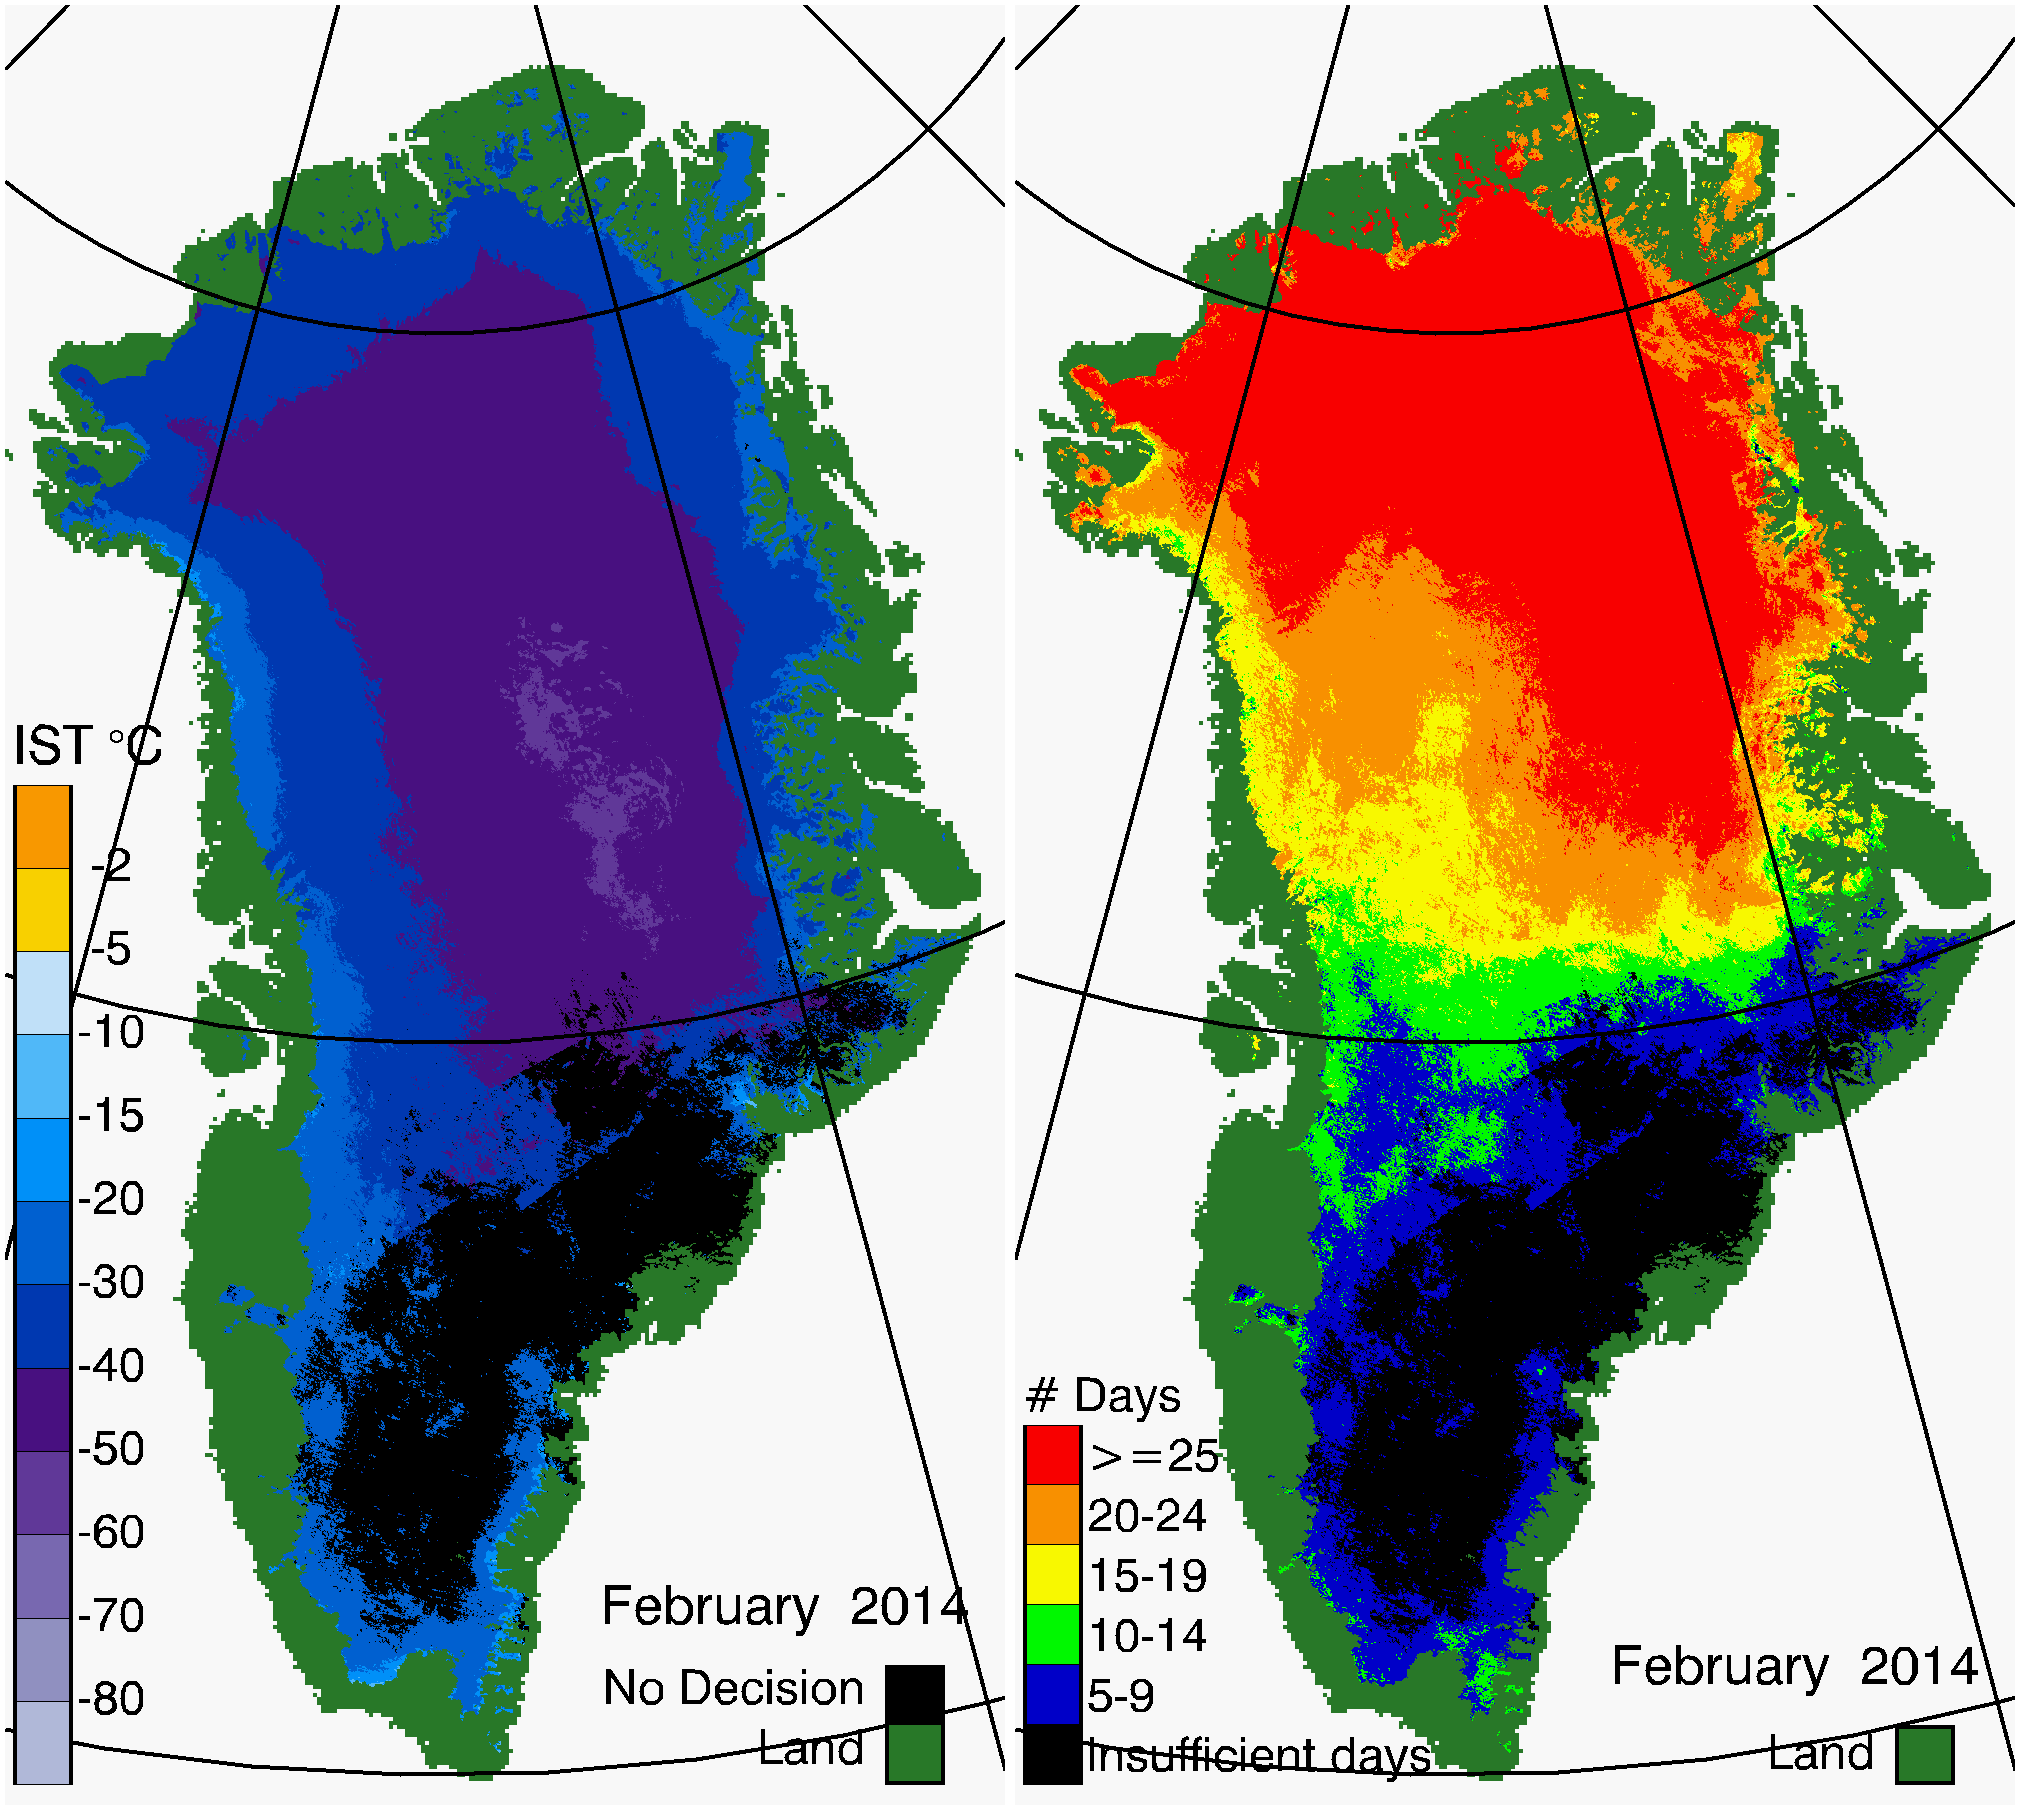 Greenland Surface Temp 02/2014